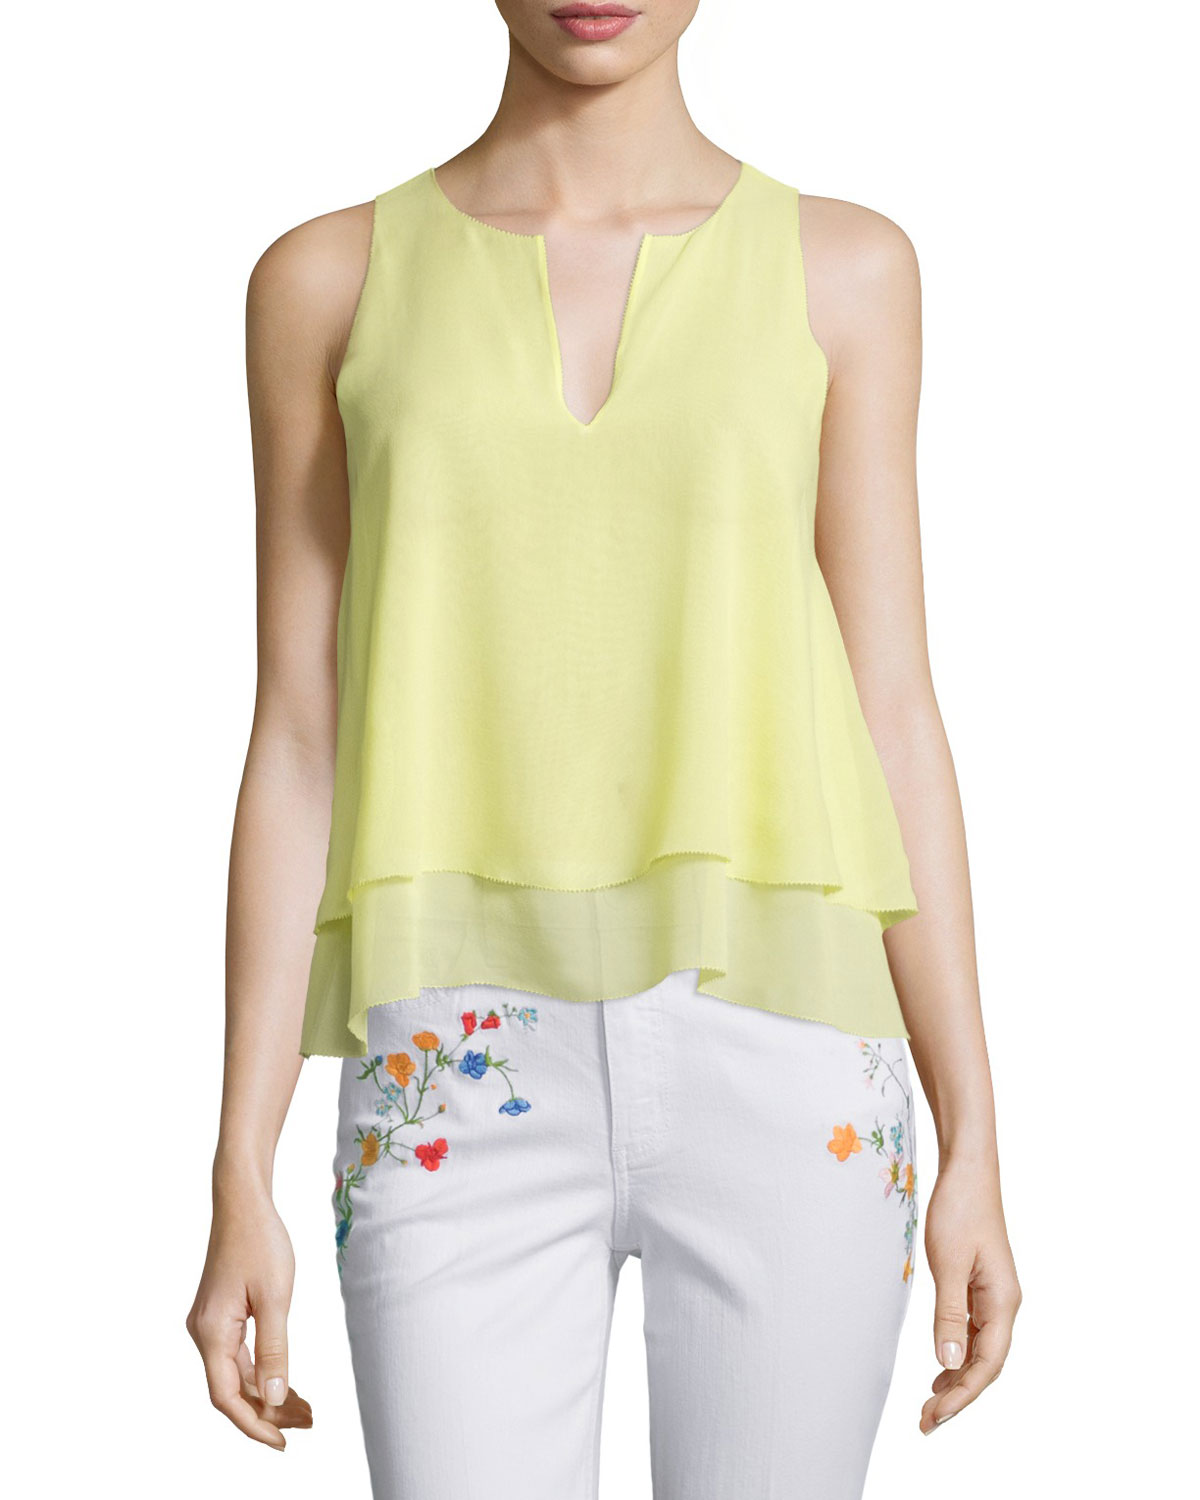 Alex Layered Sleeveless Silk Top, Lemon Curd